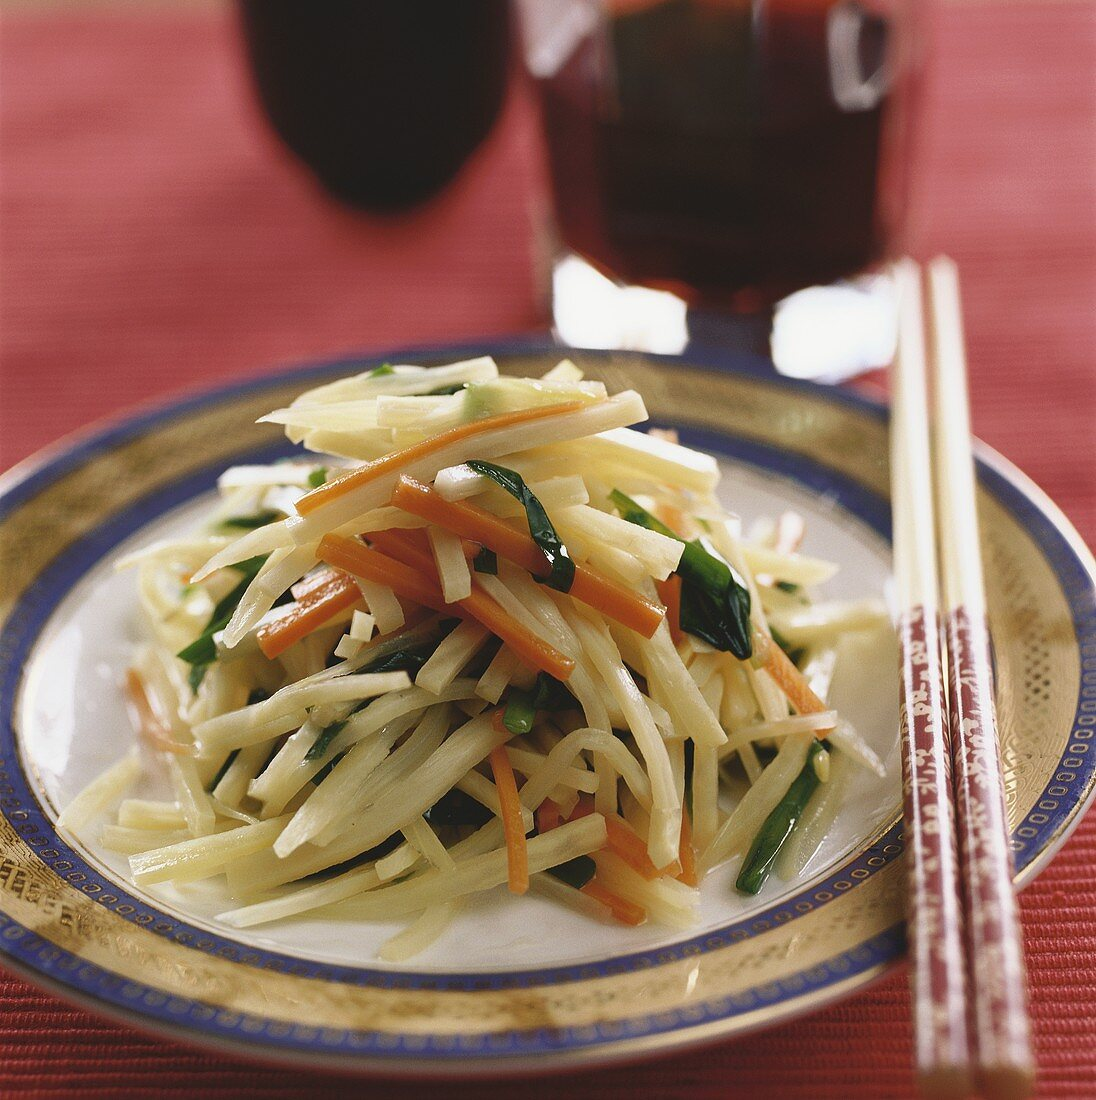 Strips of bamboo with carrots and chives (China)